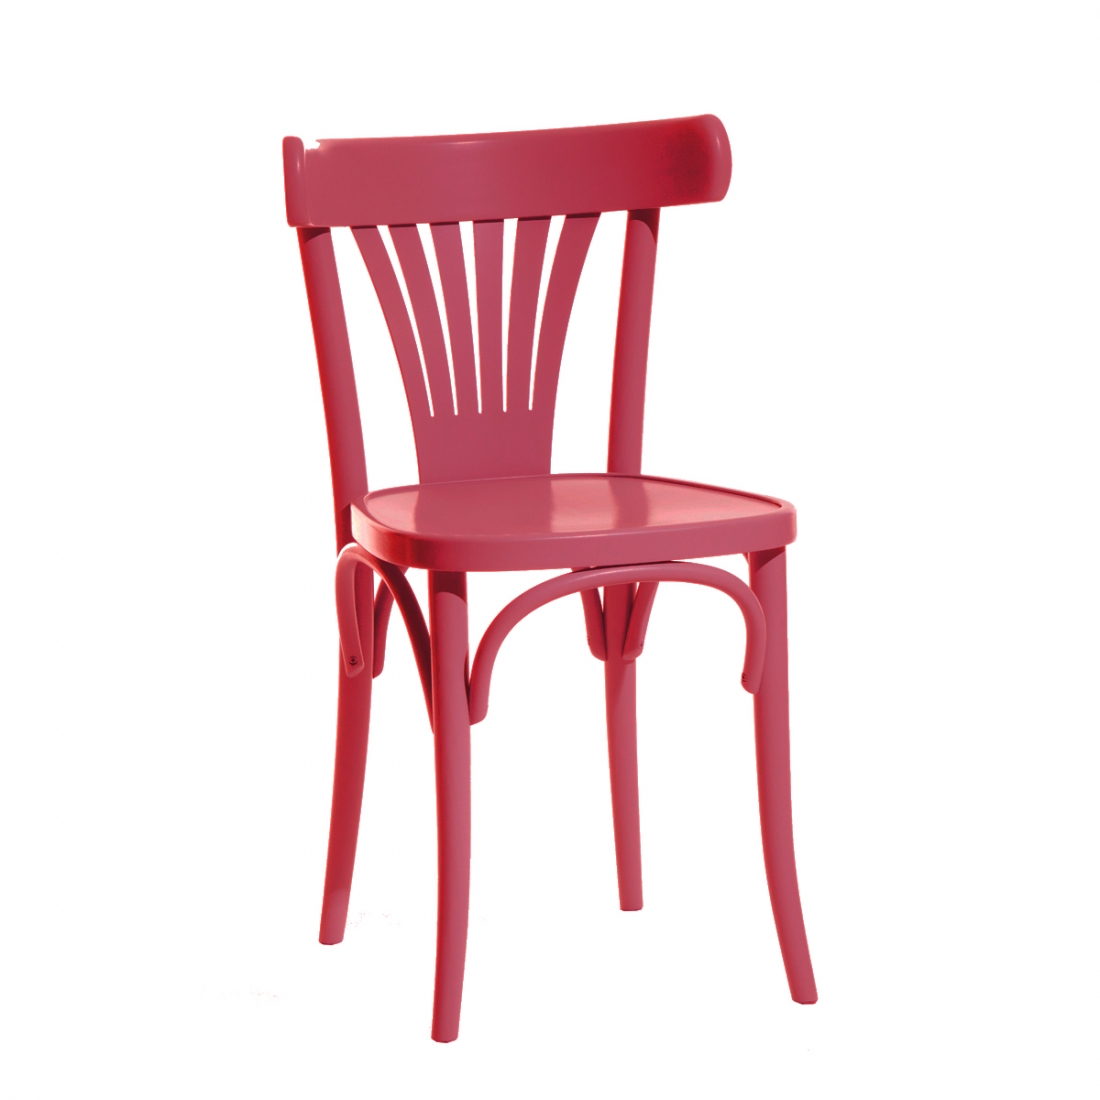 Chaise Bistrot TON 56 en rouge extra